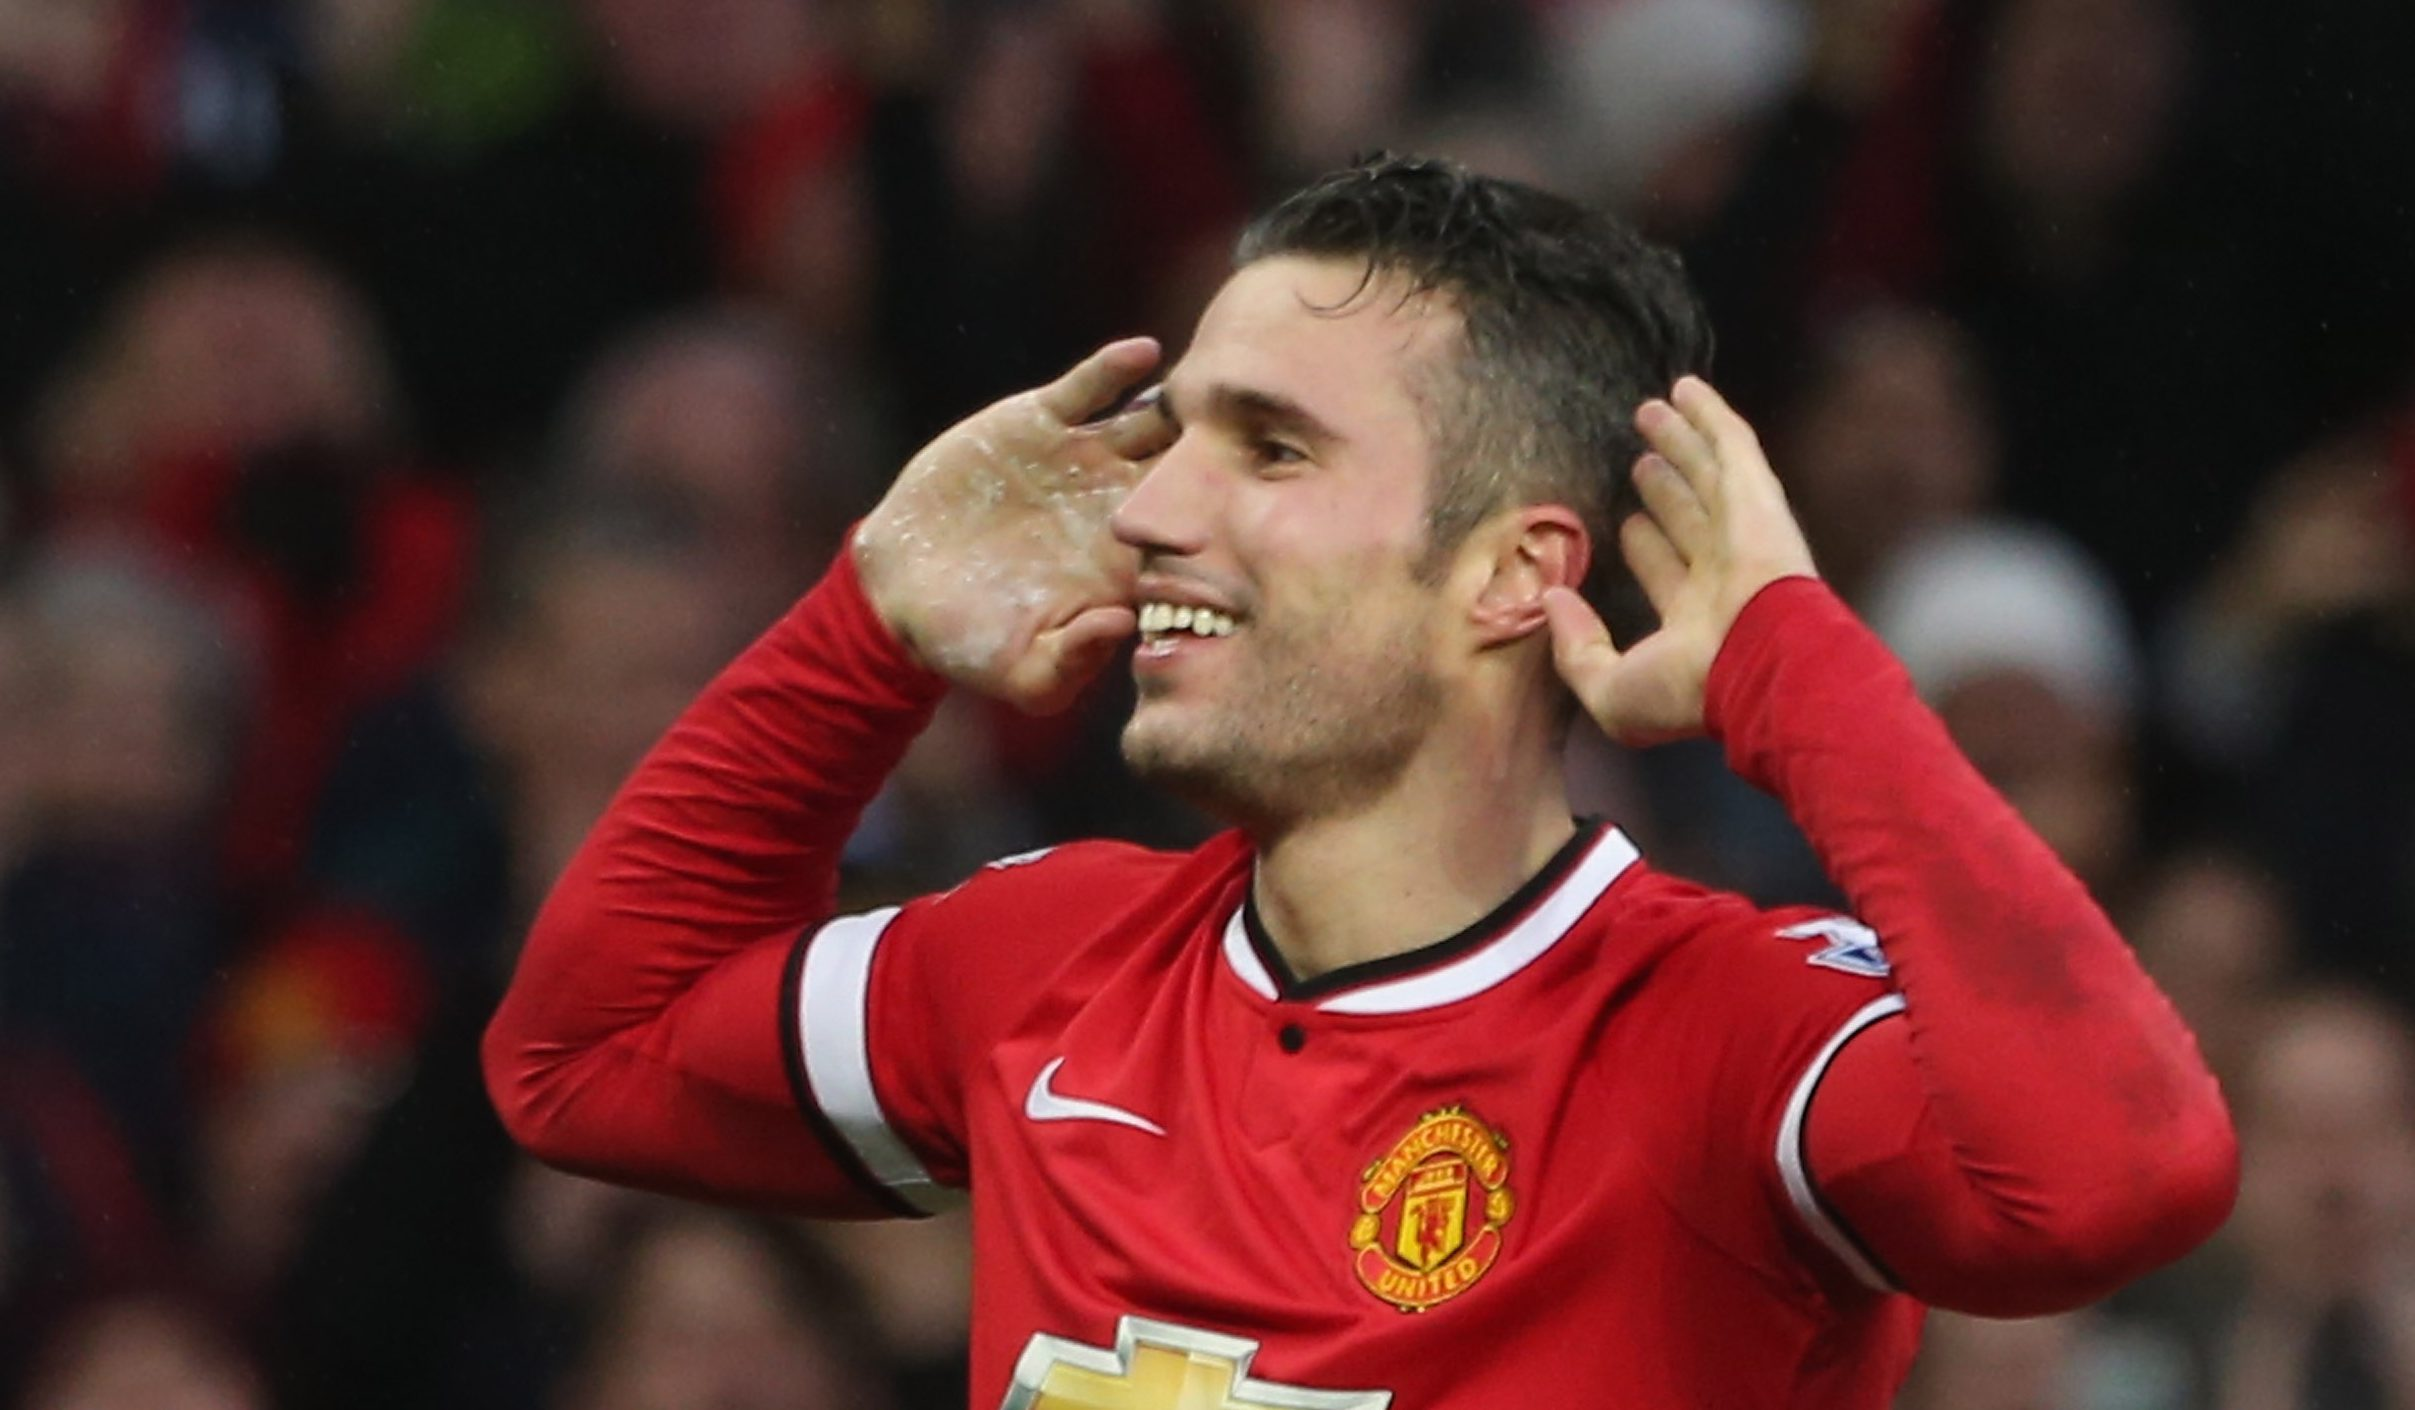 Manchester United fan trolls his Arsenal-supporting girlfriend with Robin van Persie present for Christmas